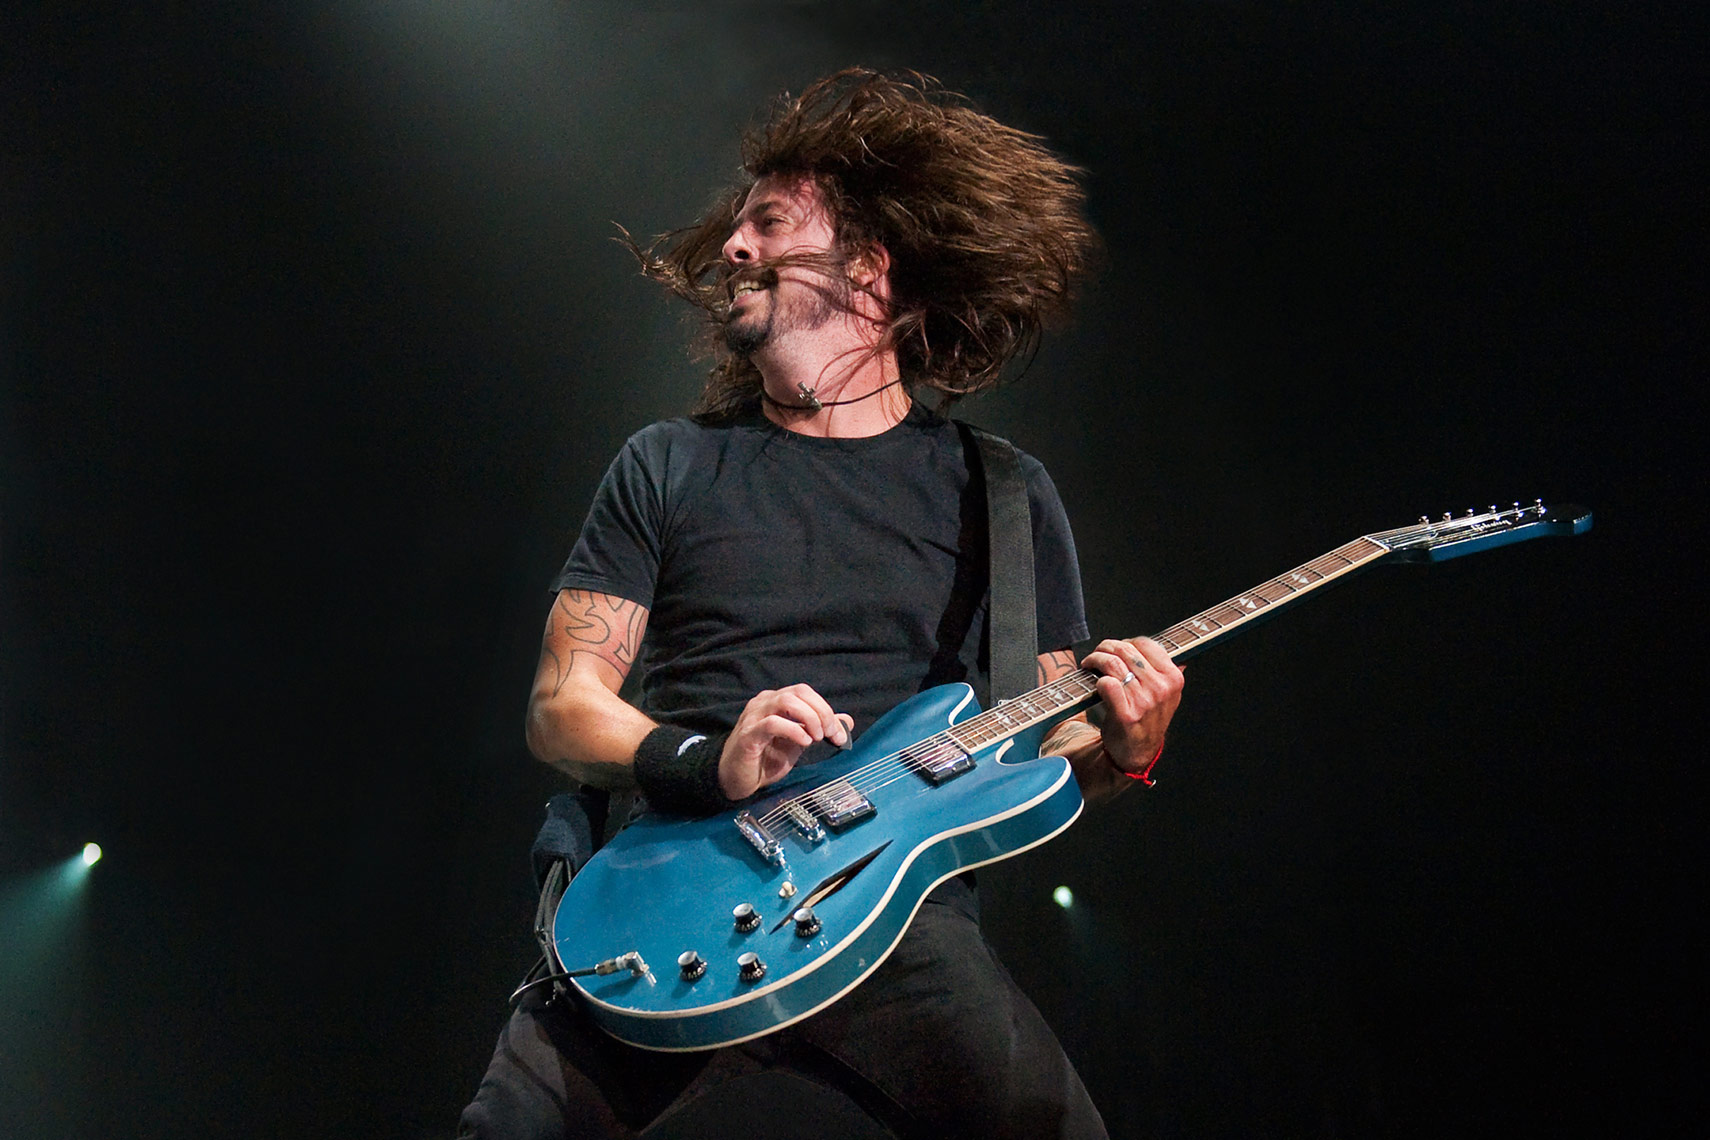 Dave-Grohl-Foo-Fighters-Wembley-Arena.jpg